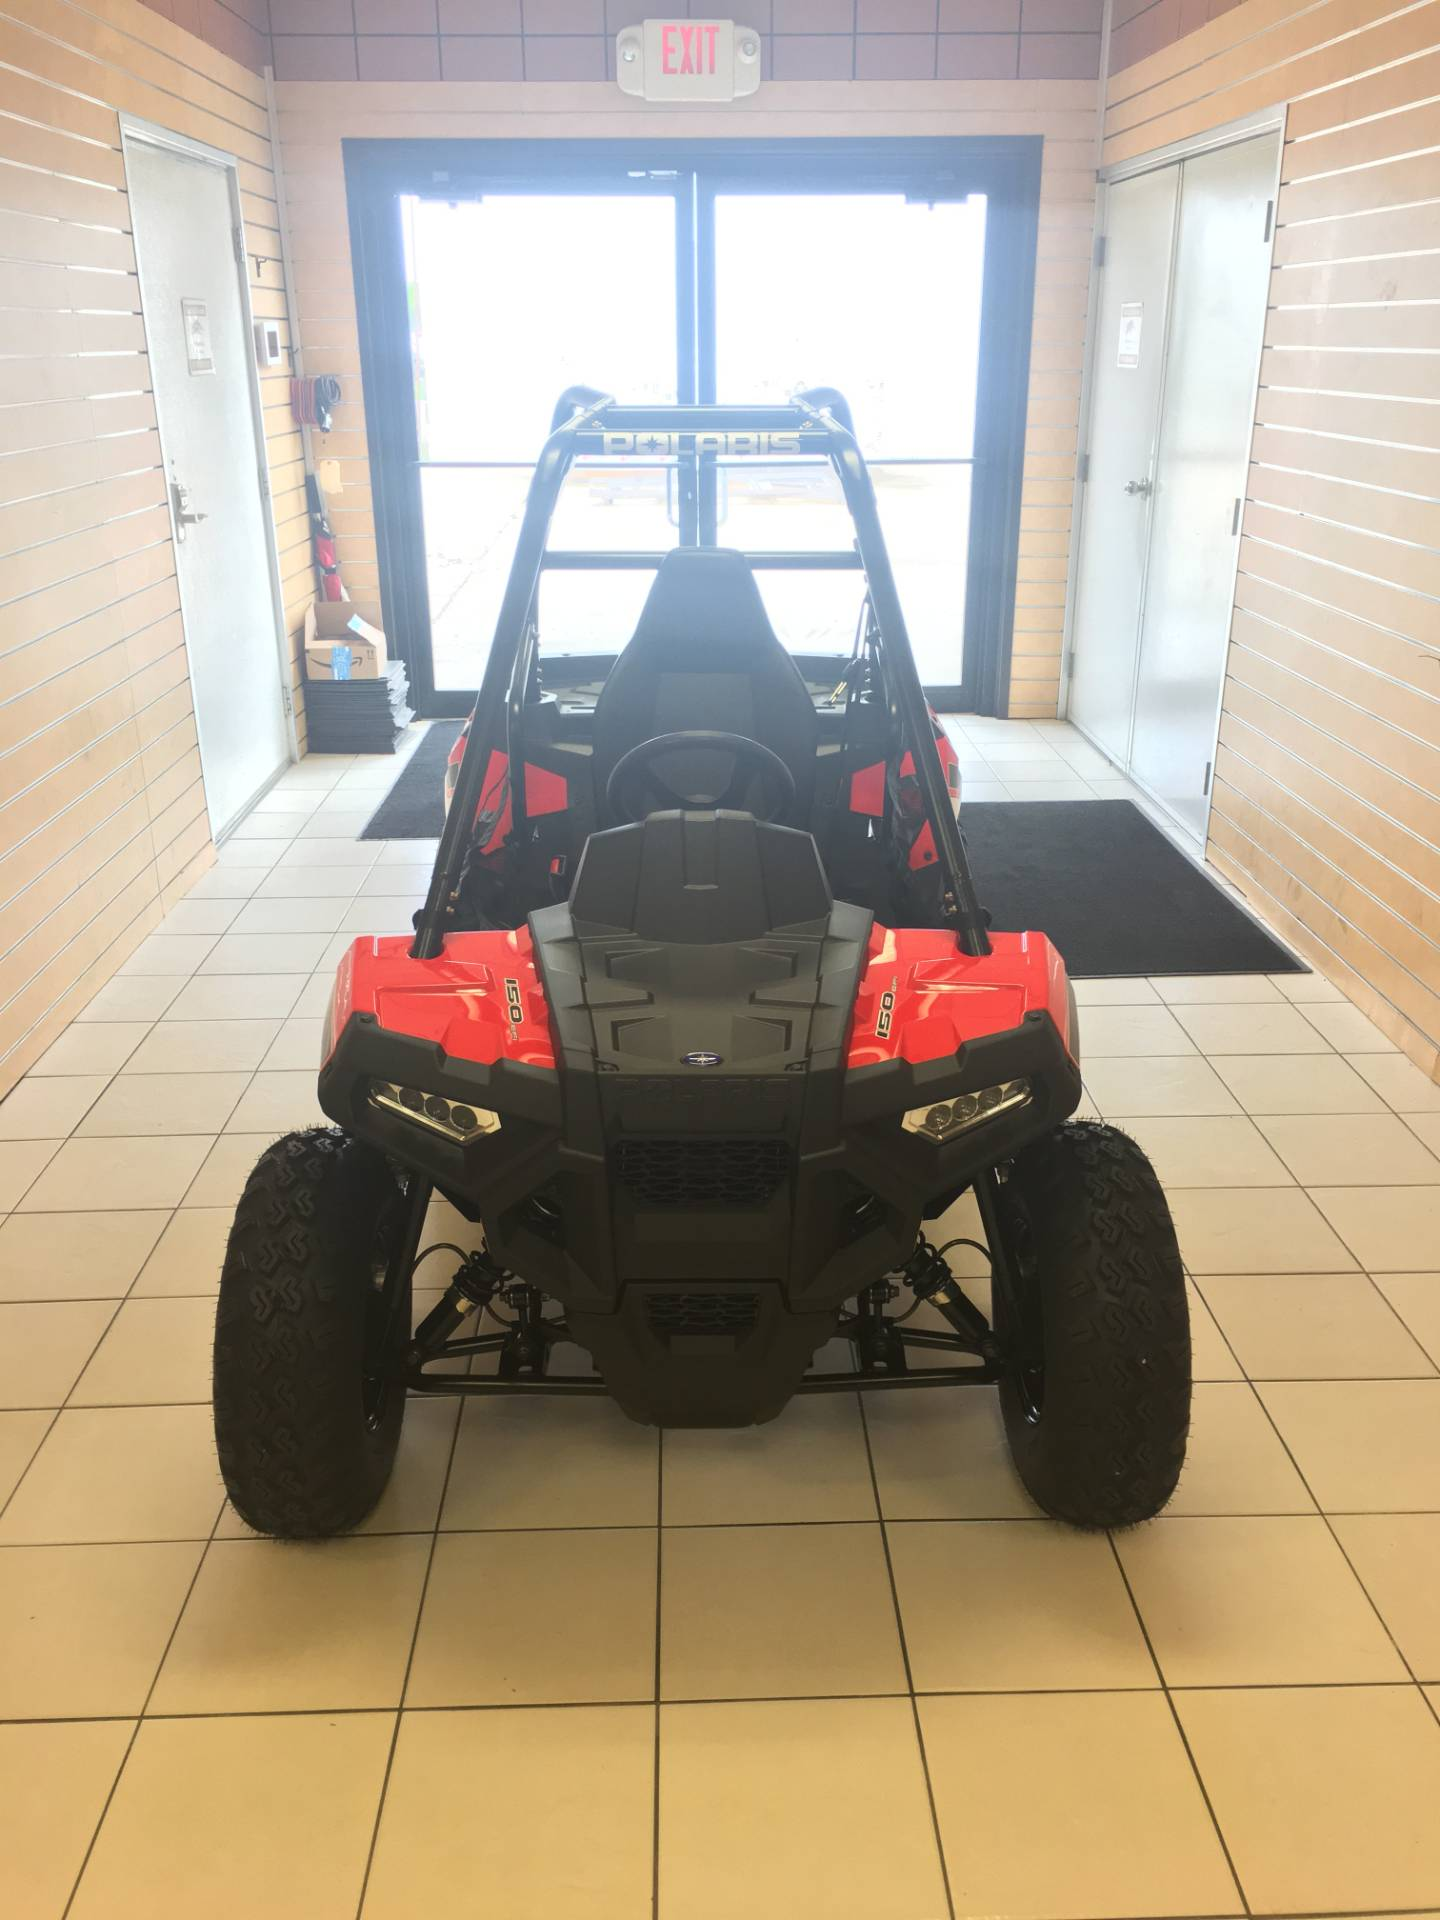 2018 Polaris Ace 150 EFI in Chanute, Kansas - Photo 1